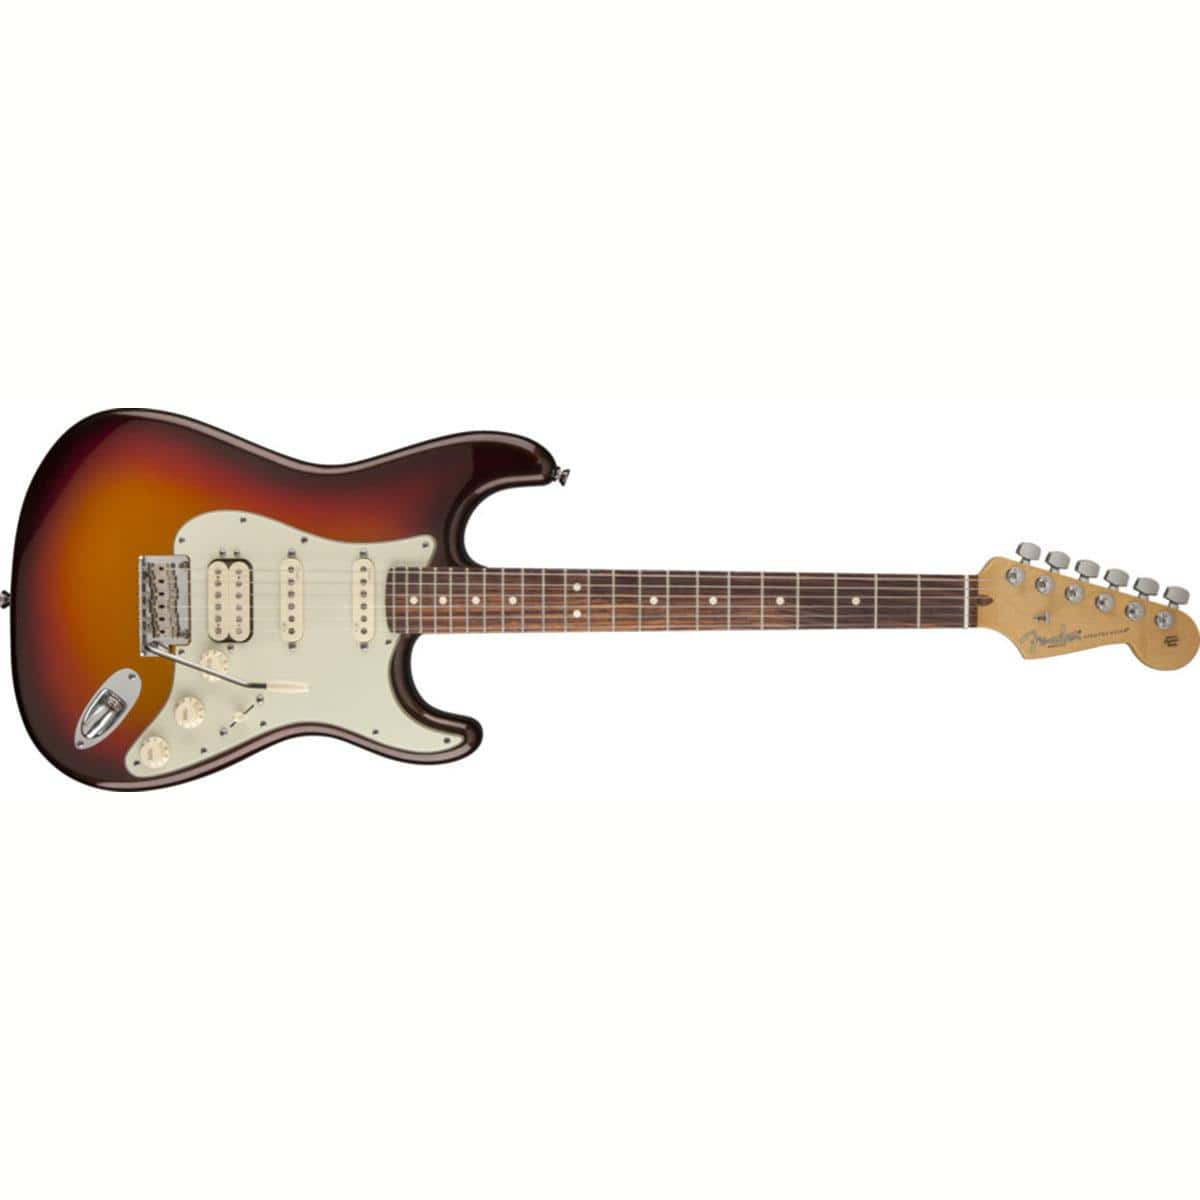 Fender American Deluxe Stratocaster Plus HSS Electric Guitar  $800 + Free Shipping